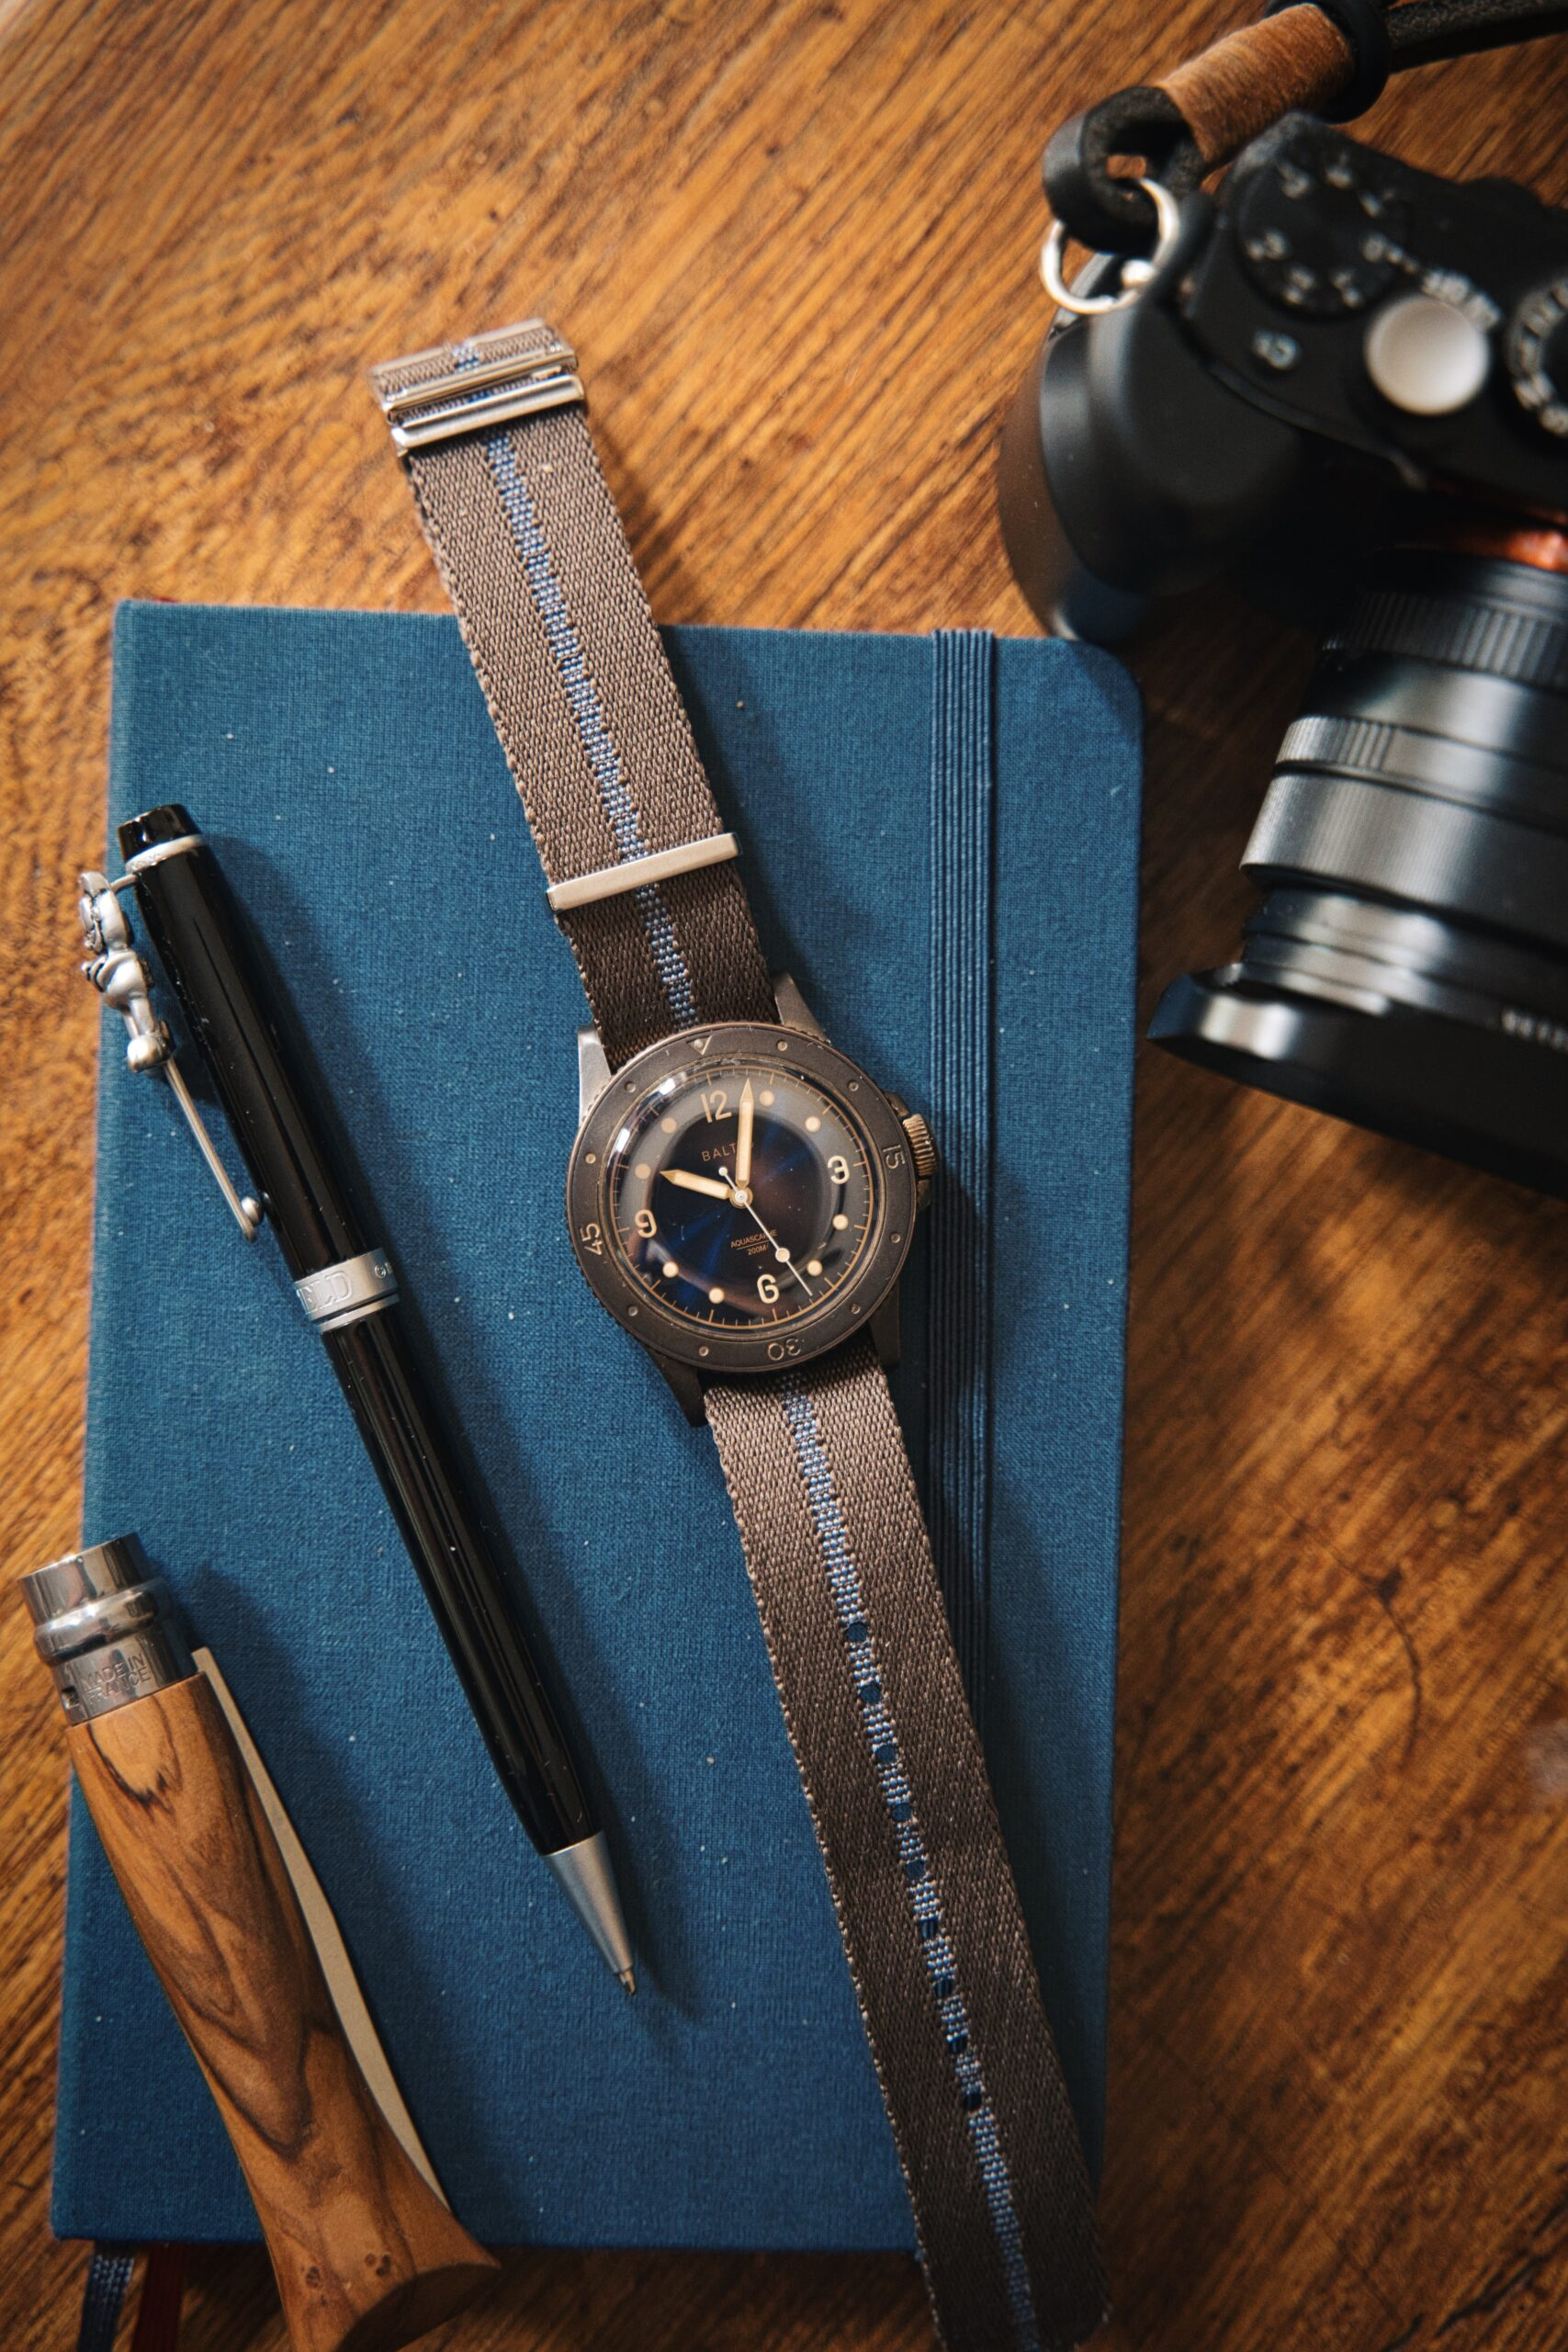 Baltic Bronze on coffee table atop a blue Moleskine, pen next to it, pocket knife and a RX1RmII Camera nearby